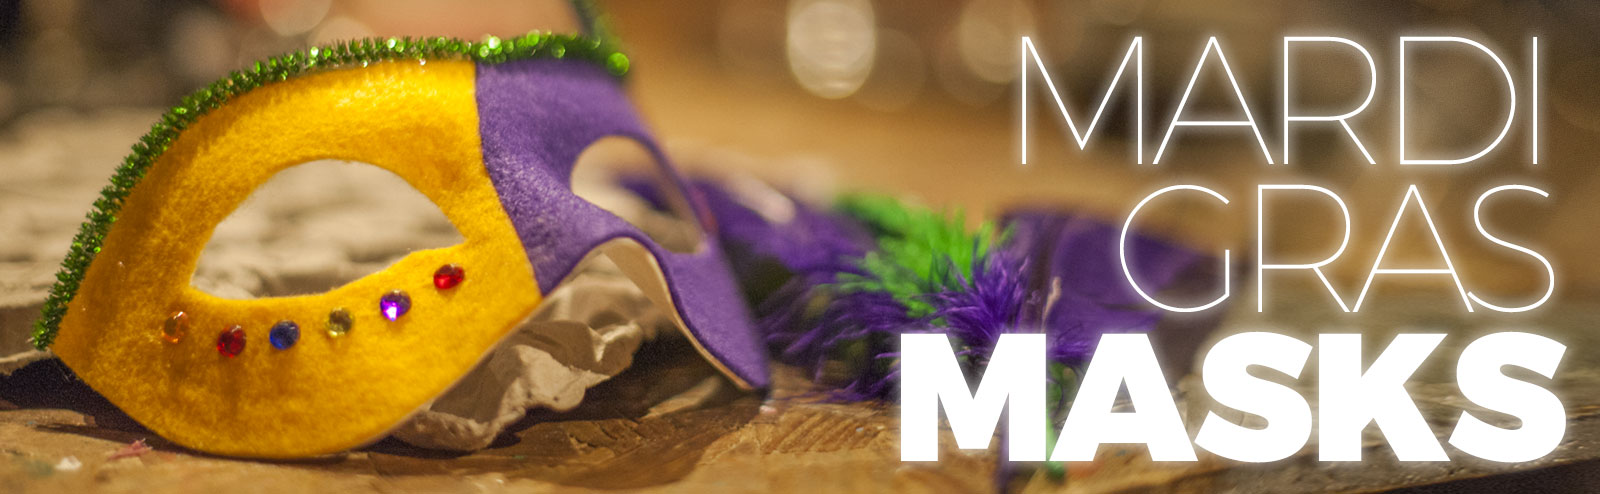 October 28 - Mardi Gras Masks!